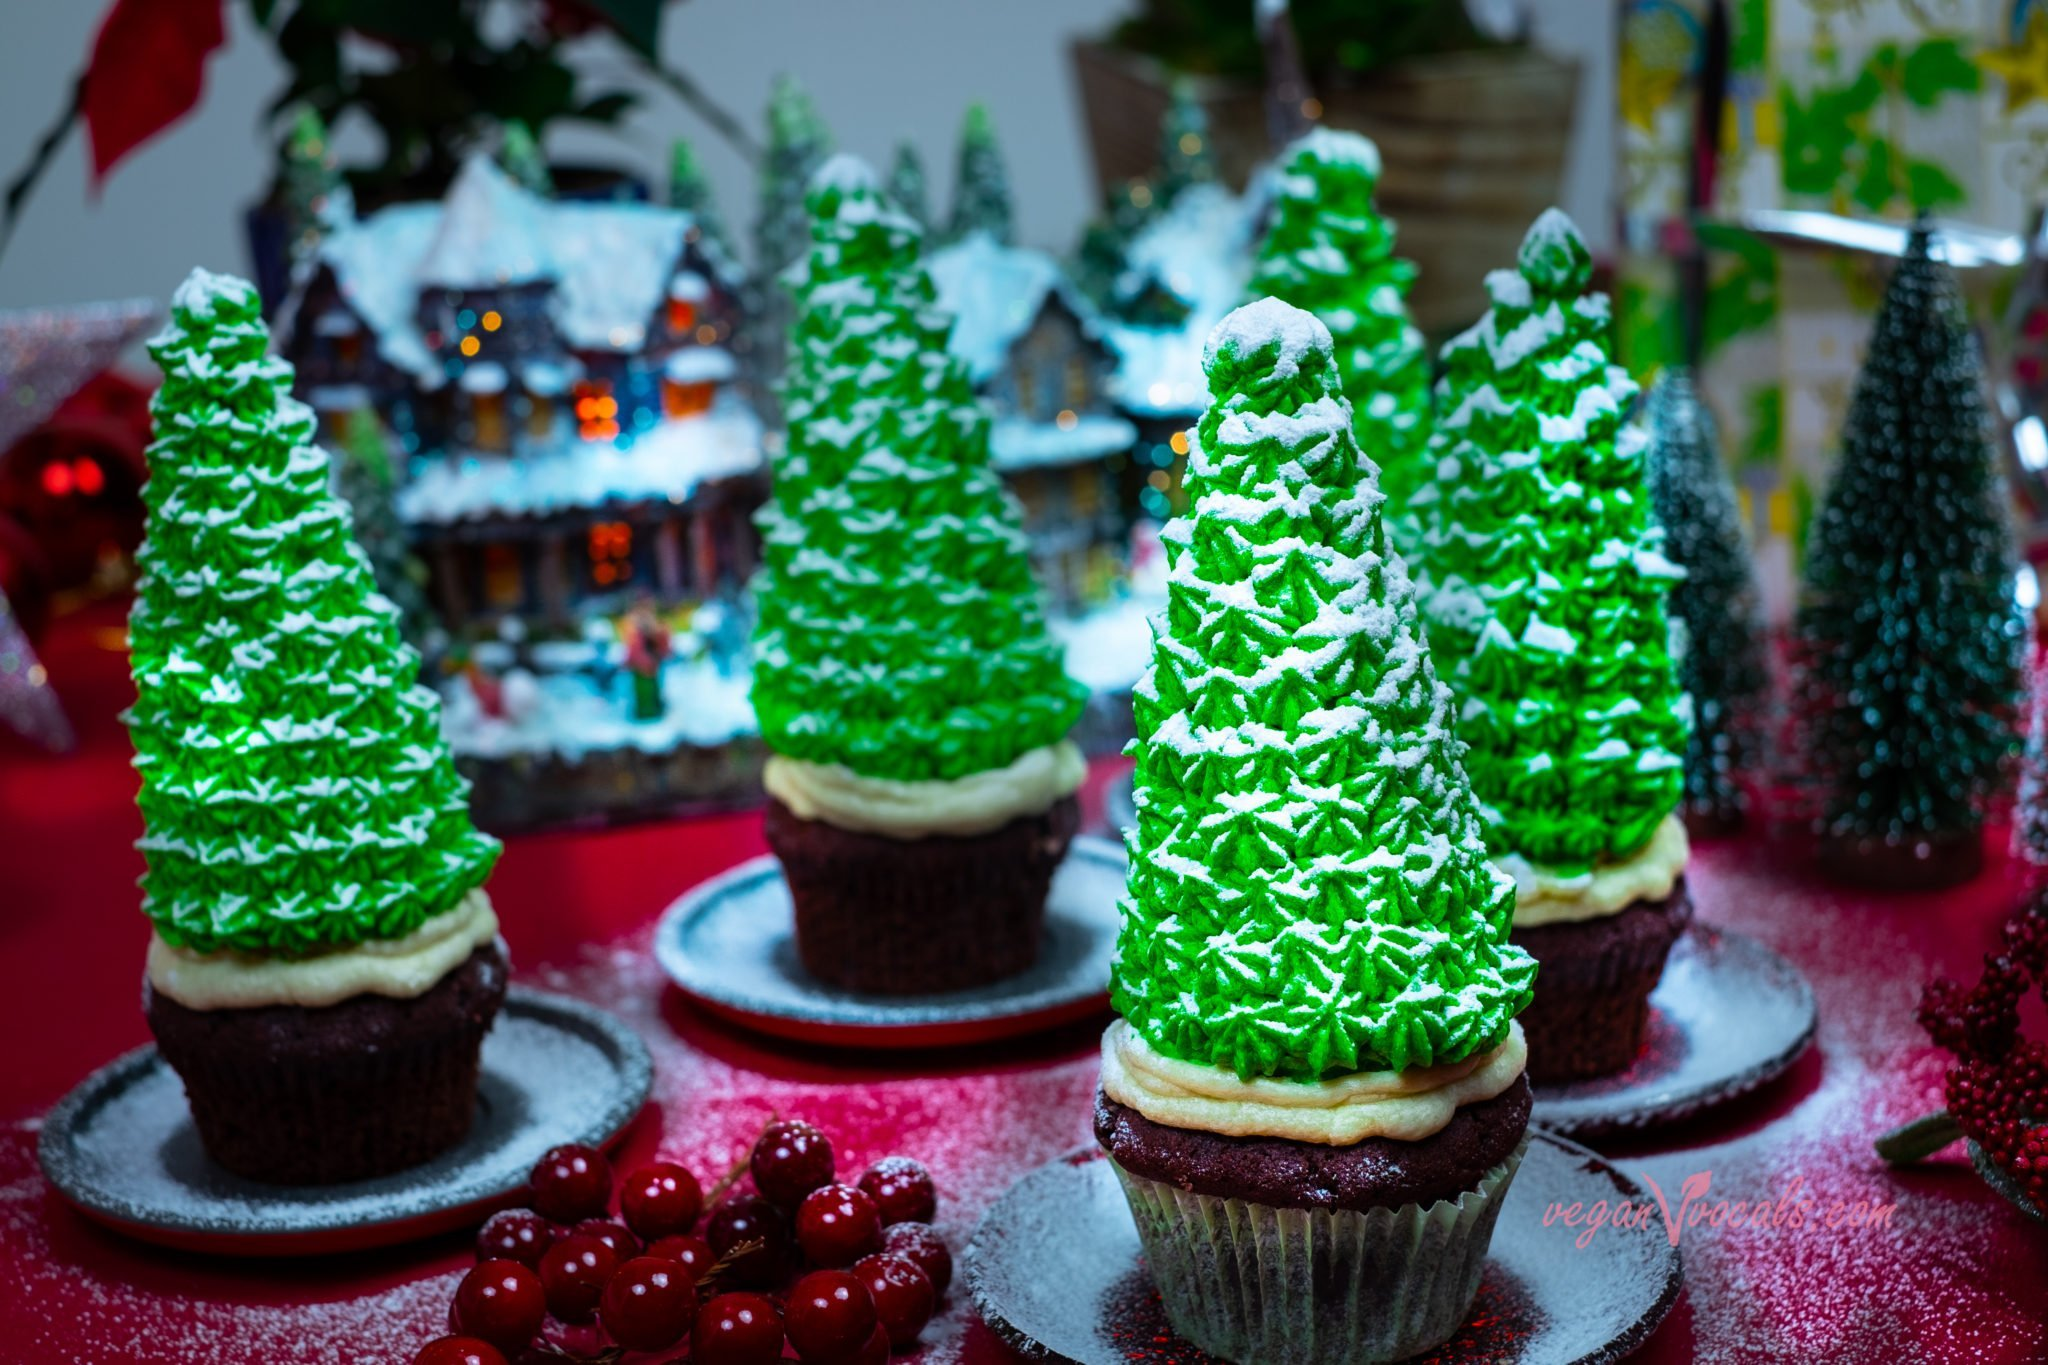 Vegan Christmas Tree Cupcakes (Red Velvet Cupcakes w/ Cream Cheese Frosting & Chocolate Covered Walnuts Filling)